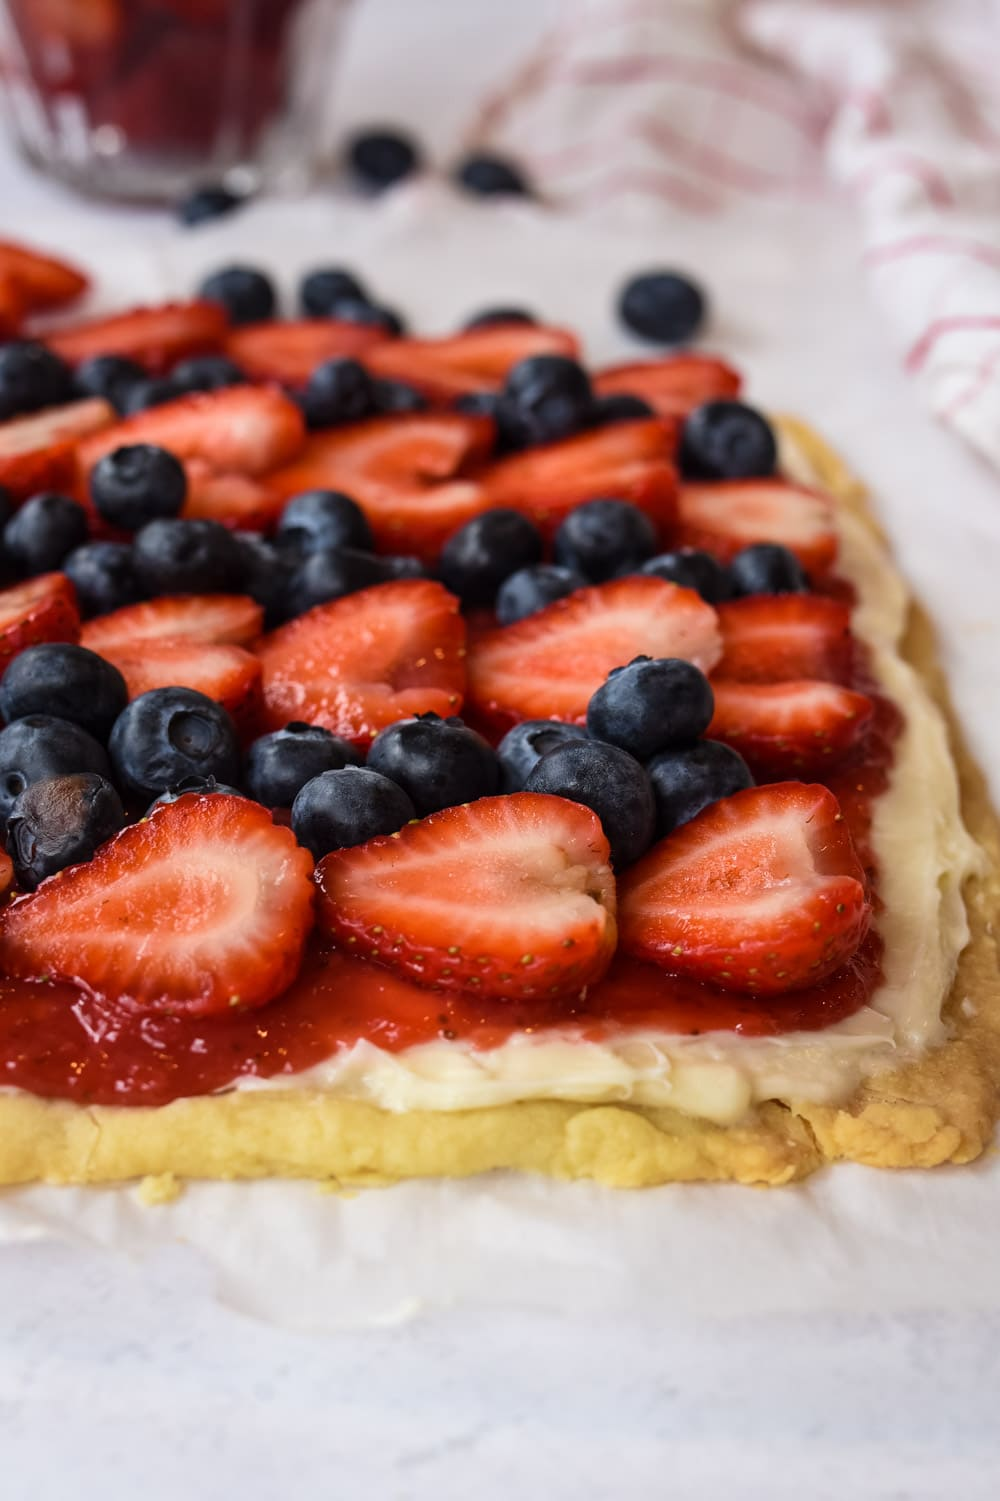 Strawberry and blueberry fruit pizza